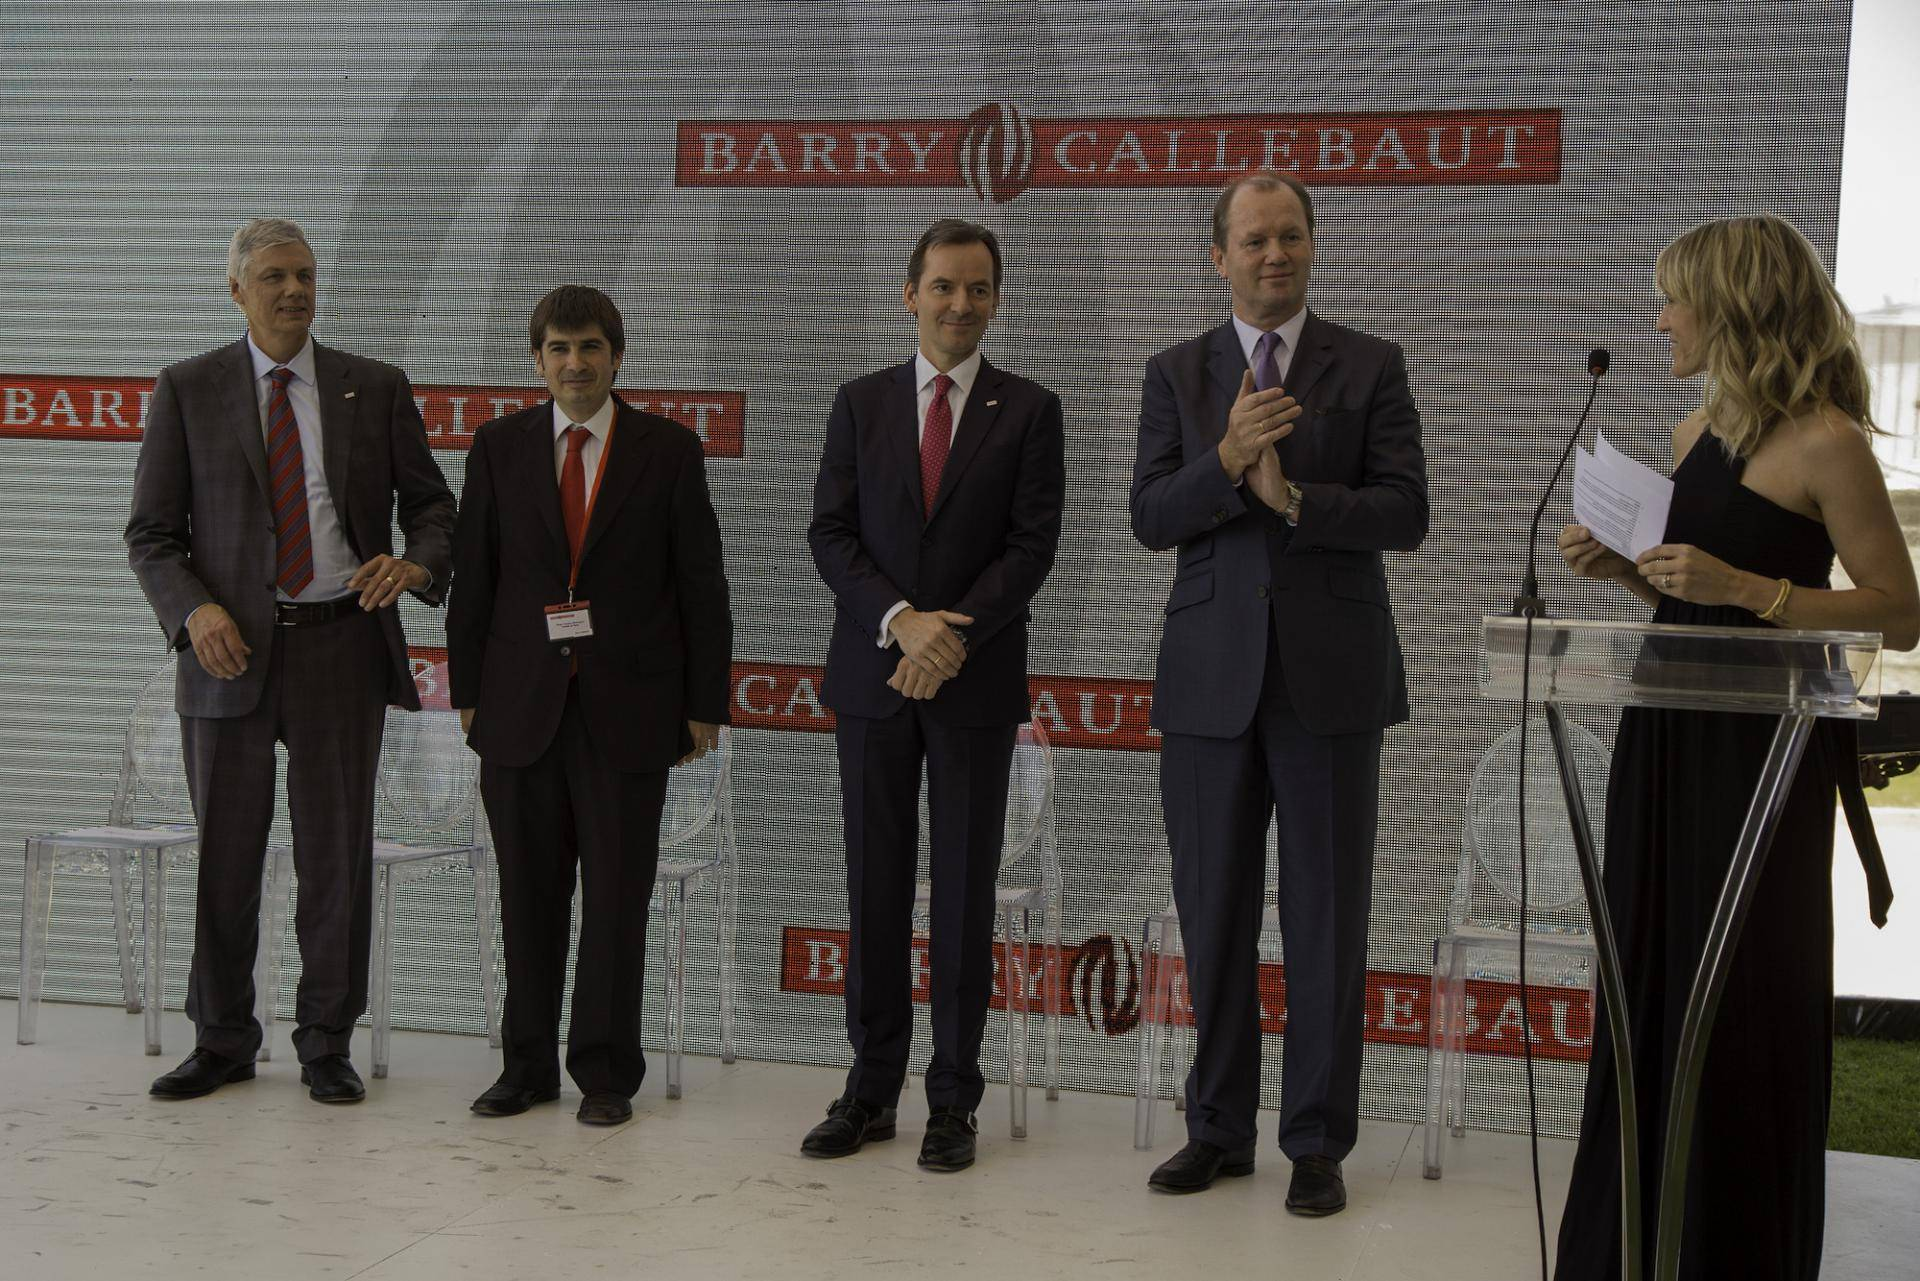 Barry Callebaut inaugurates its first chocolate factory in Chile